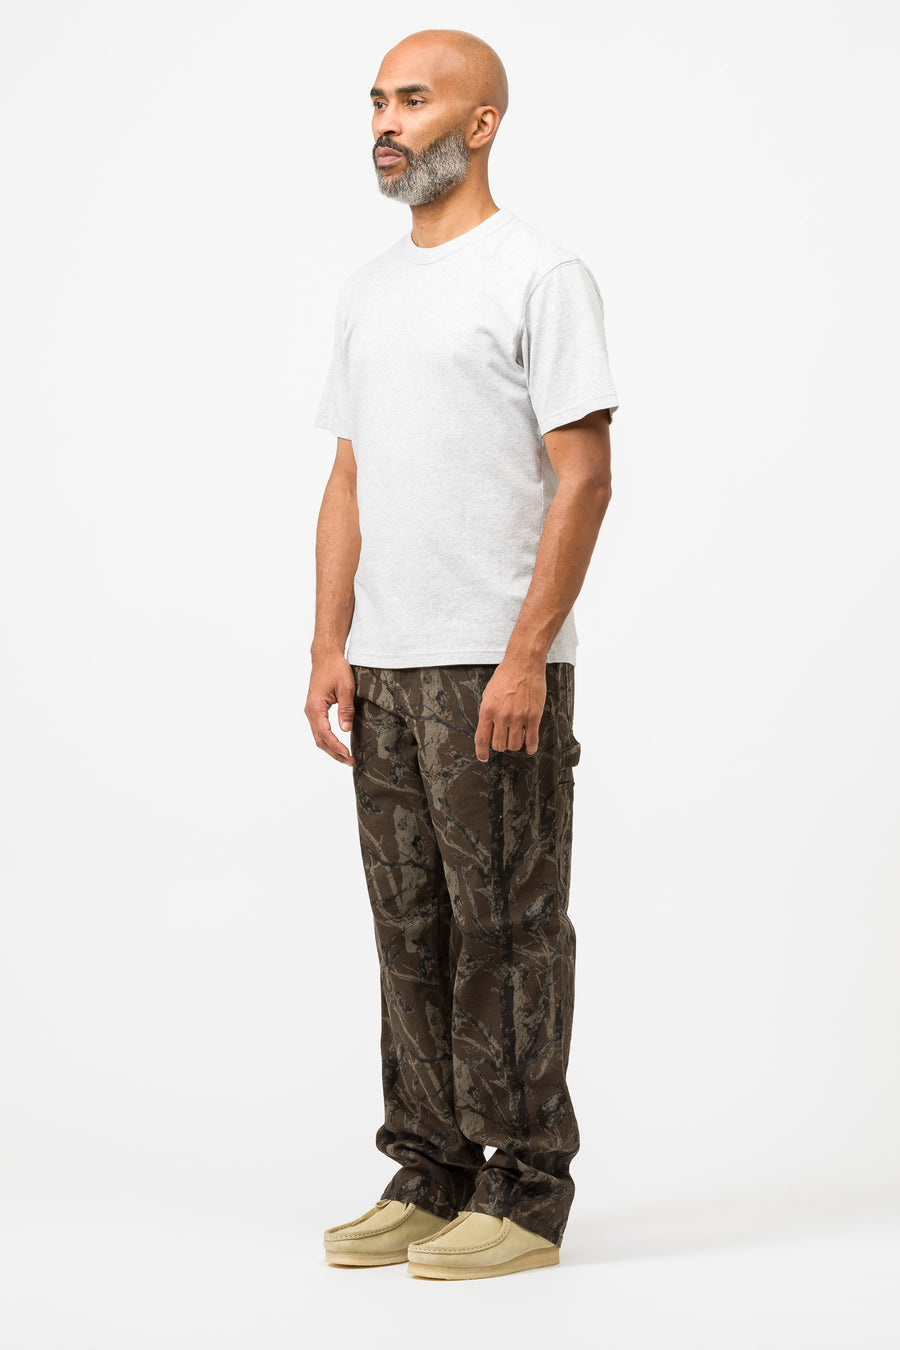 Carhartt WIP Single Knee Pant Dearborn Canvas in Rinsed Camo Tree Green - Notre